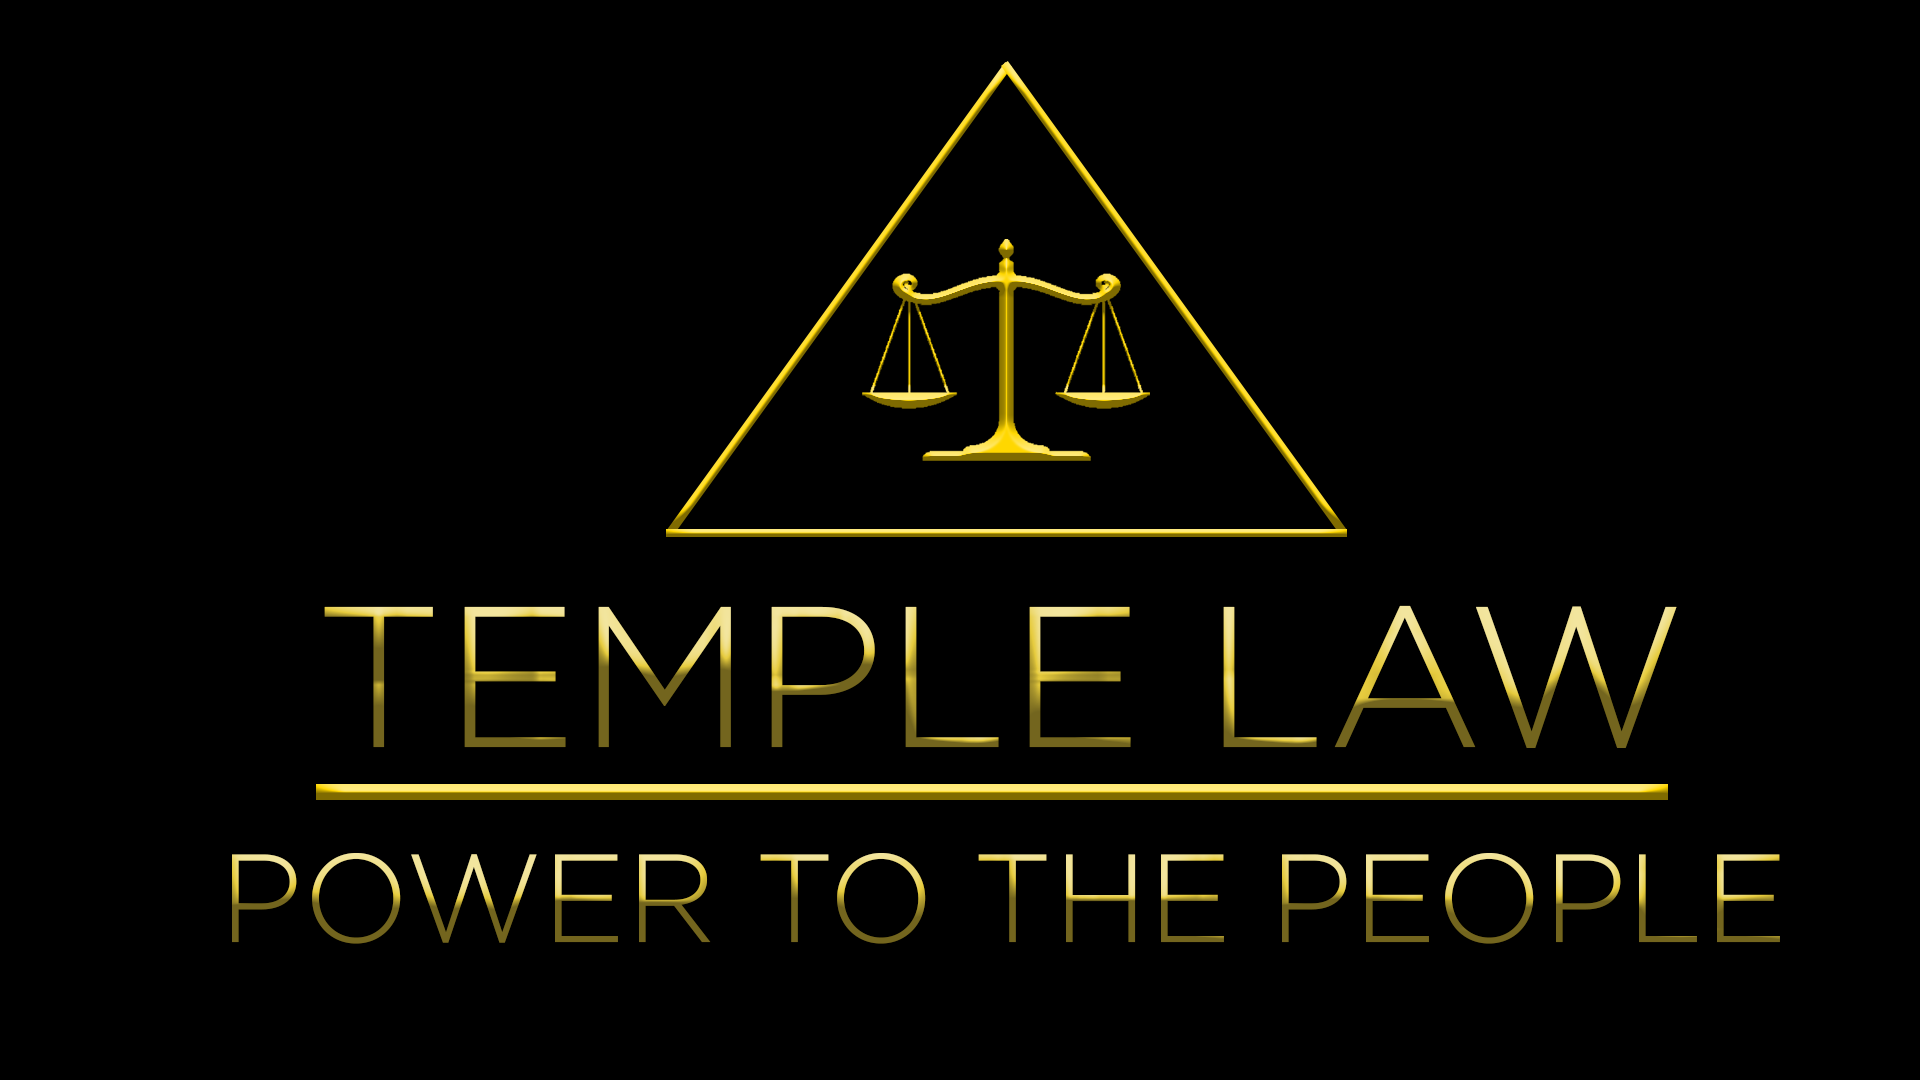 Temple Law